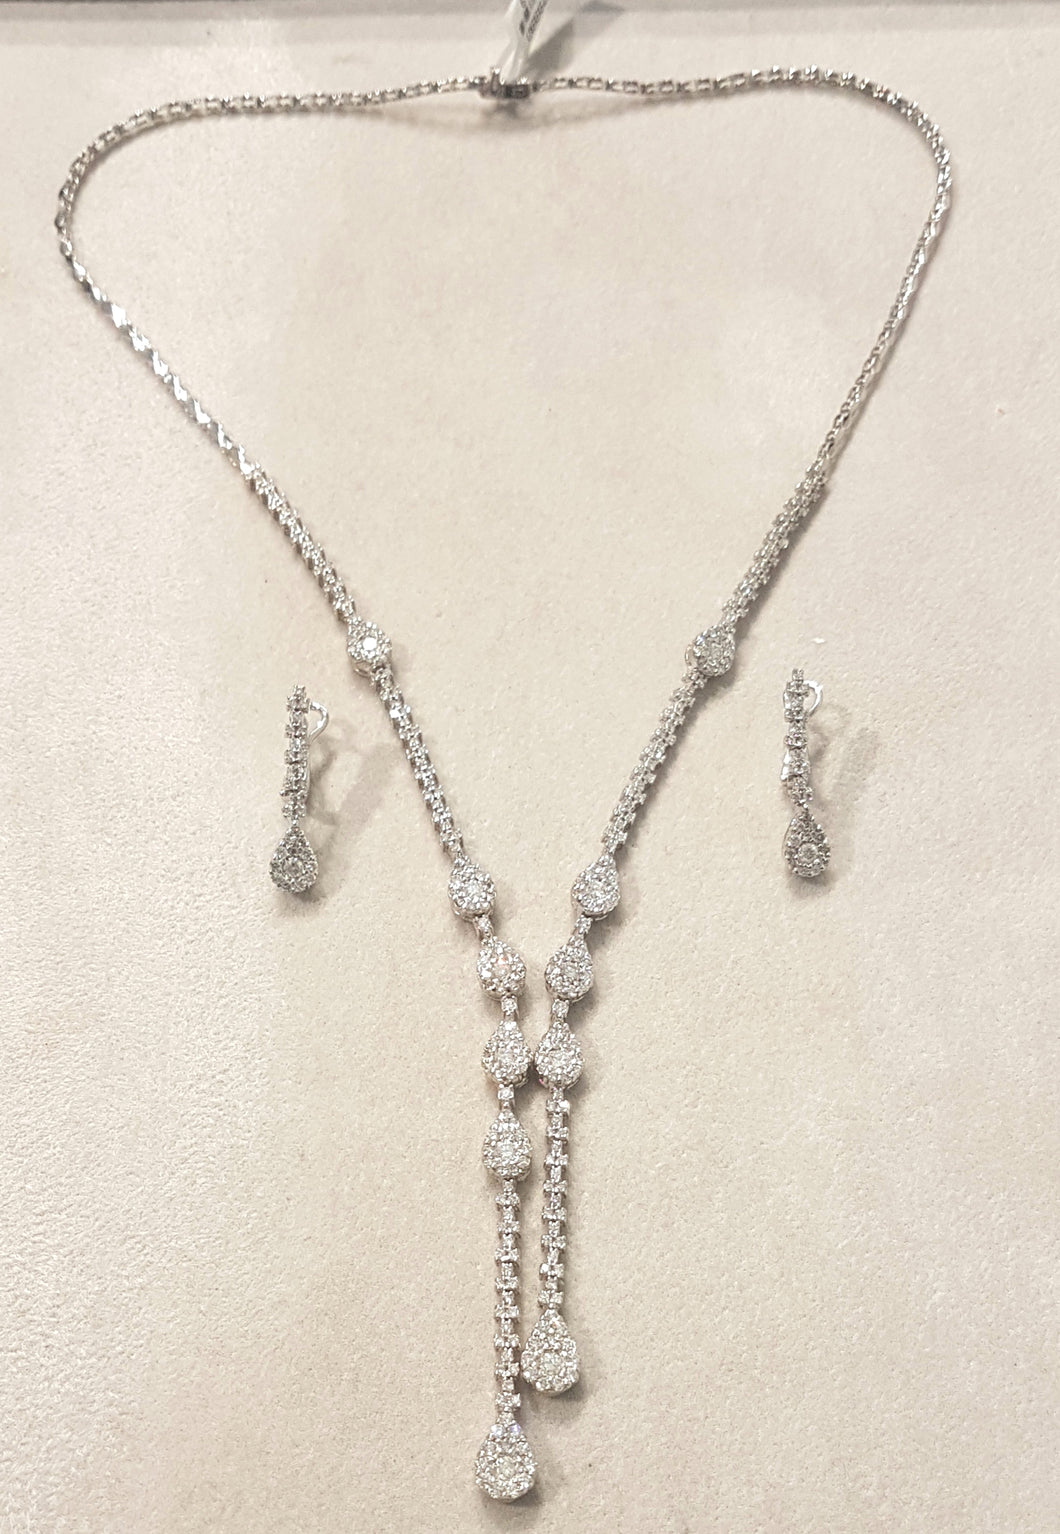 4.02ct [360] Round Brilliant Cut Diamonds | Designer Necklace and Earrings Set | 18kt White Gold